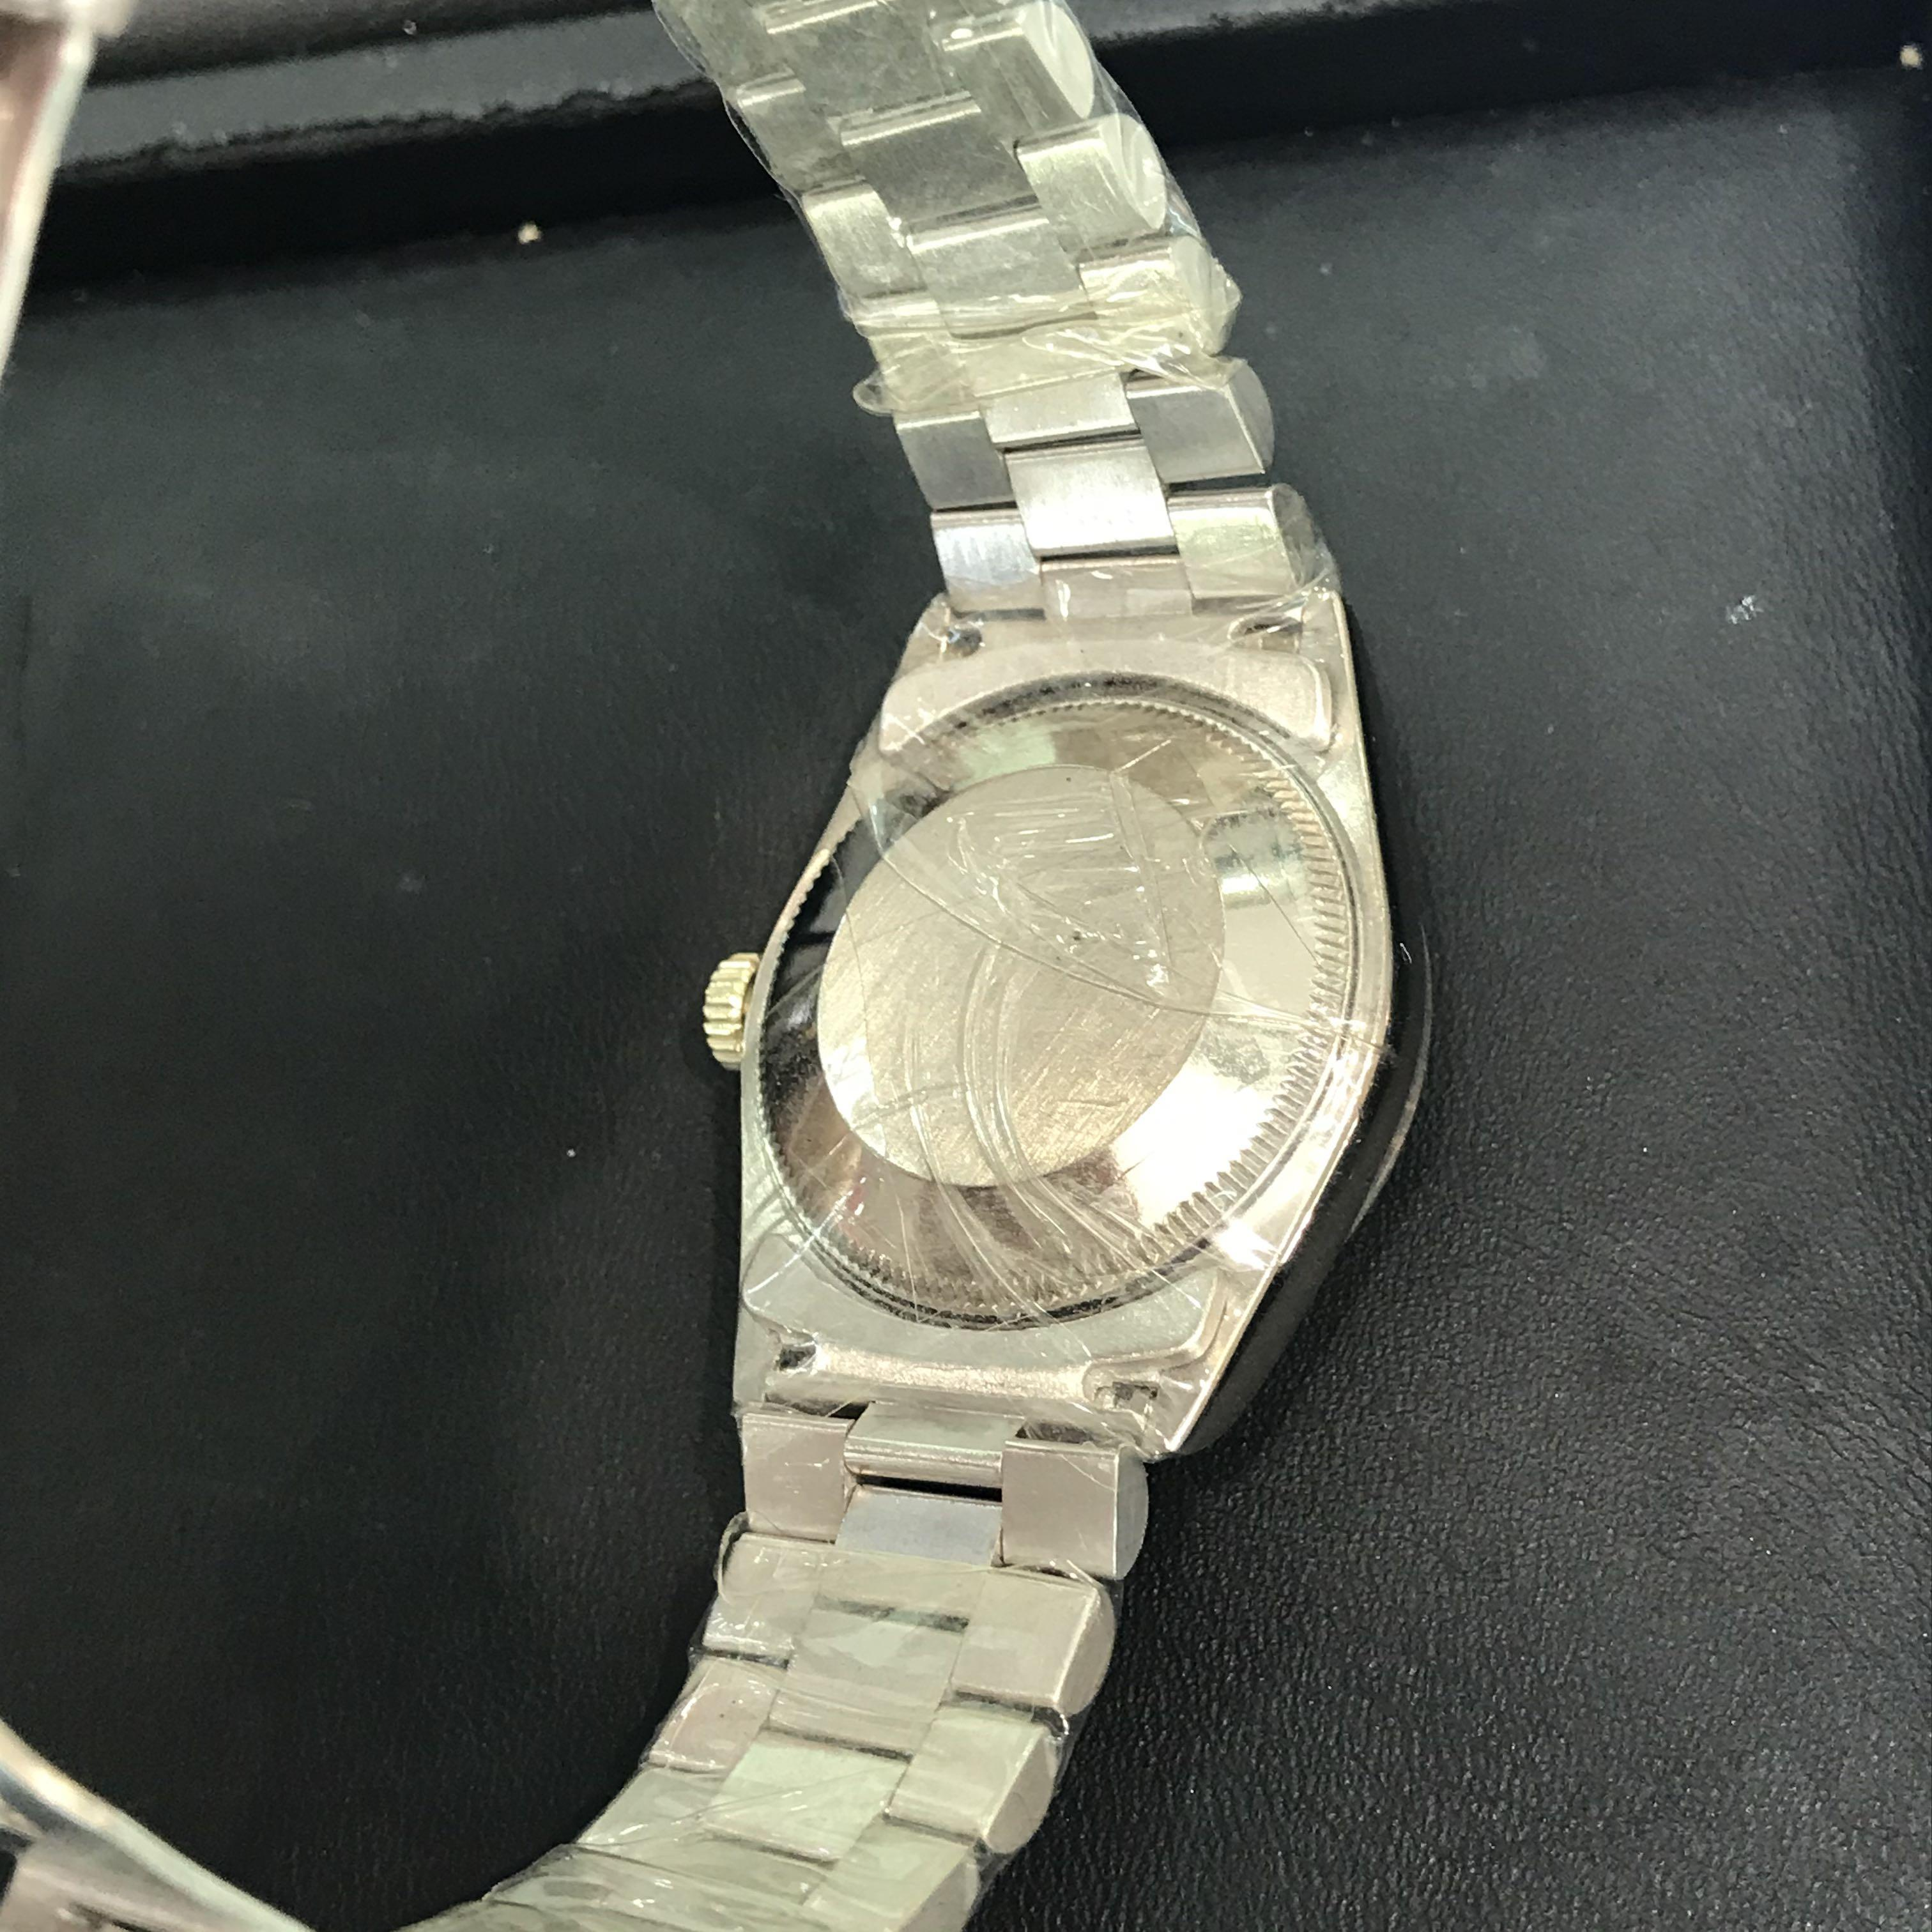 CLEARANCE SALES {Luxury Dress Watch - ROLEX} Authentic Solid 18K White Gold ROLEX Boy OYSTER PERPETUAL SUPERLATIVE CHRONOMETER OFFICIAL CERTIFIED 31mm Pearl Roman Number Dial Model 68279 With Solid Original 18K White Gold Jubilee Bracelet & 18K W/G Bezel